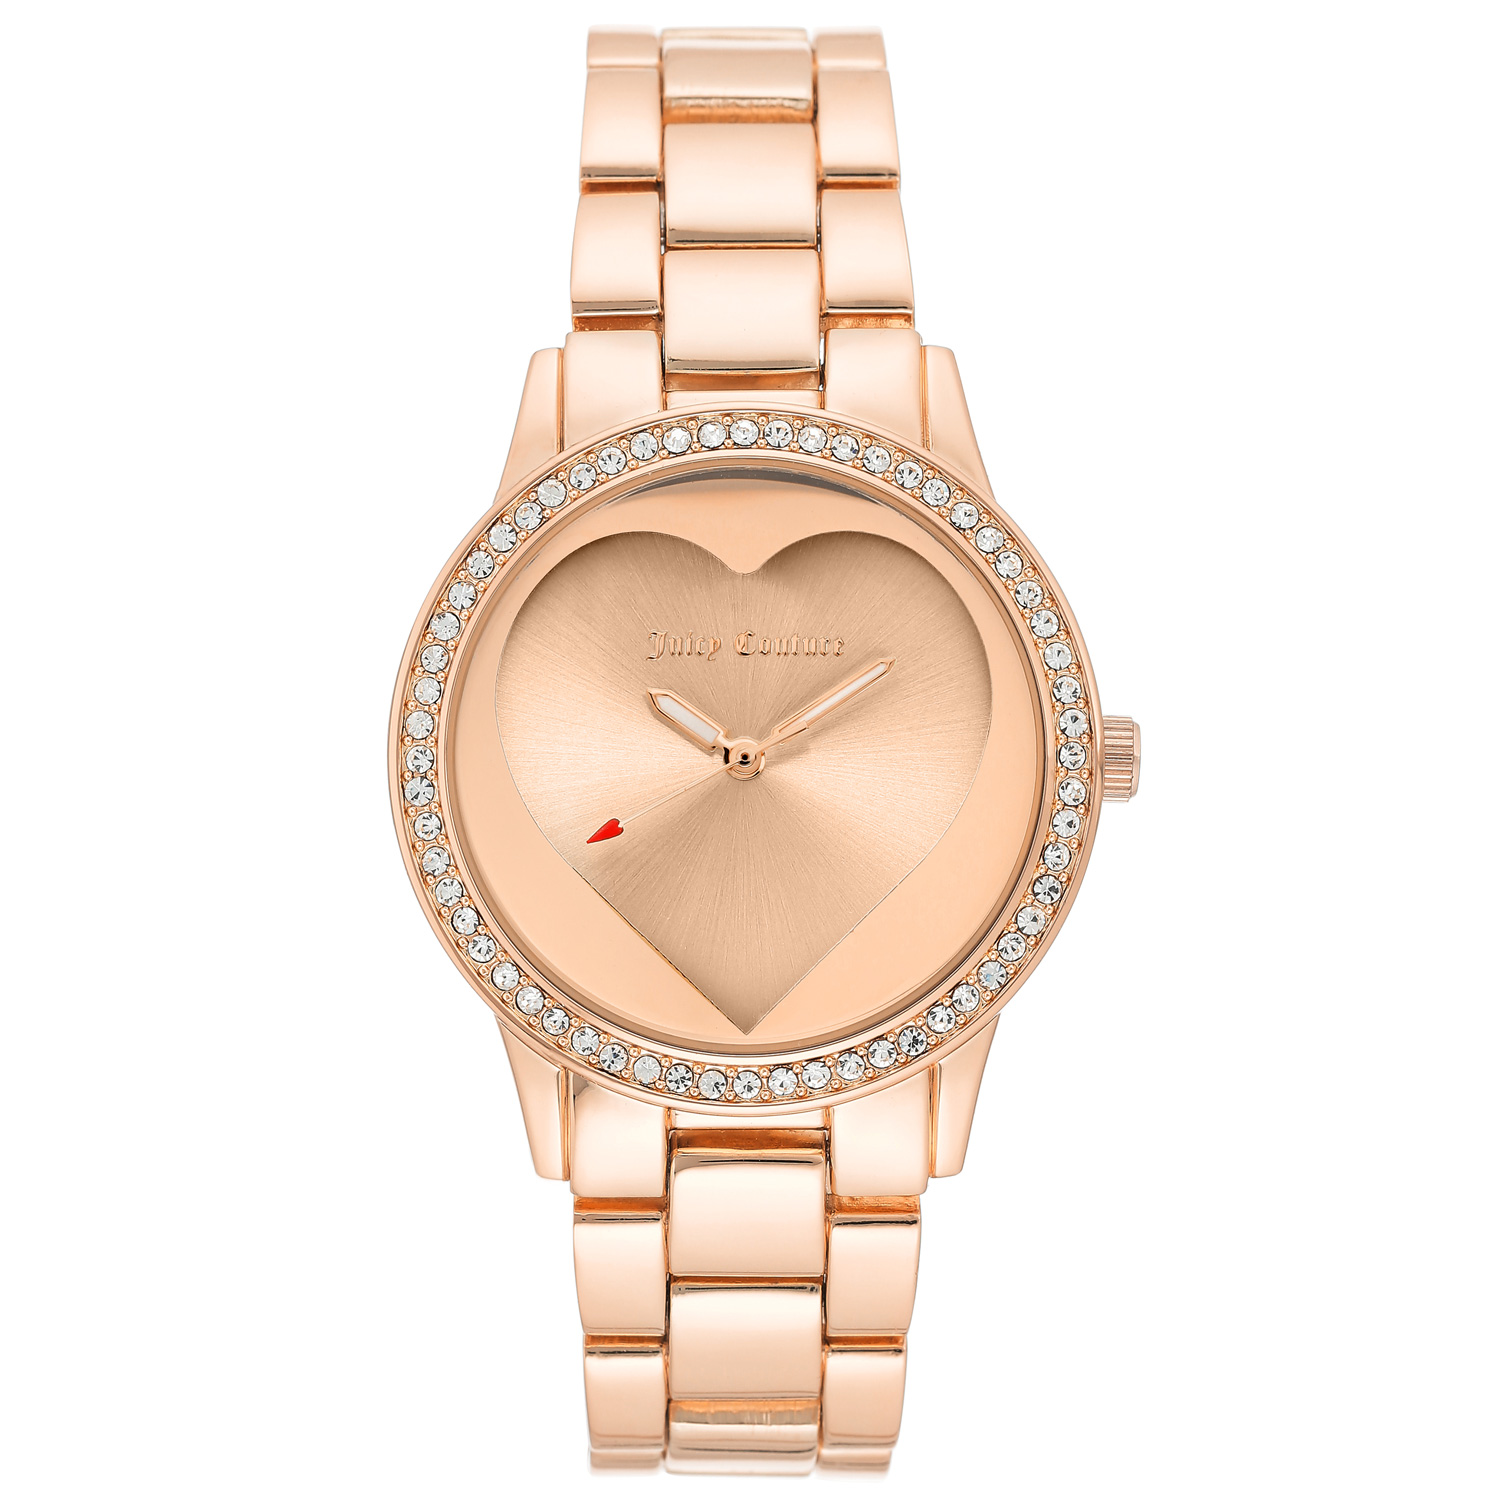 Juicy Couture Watch JC/1120RGRG Rose Gold